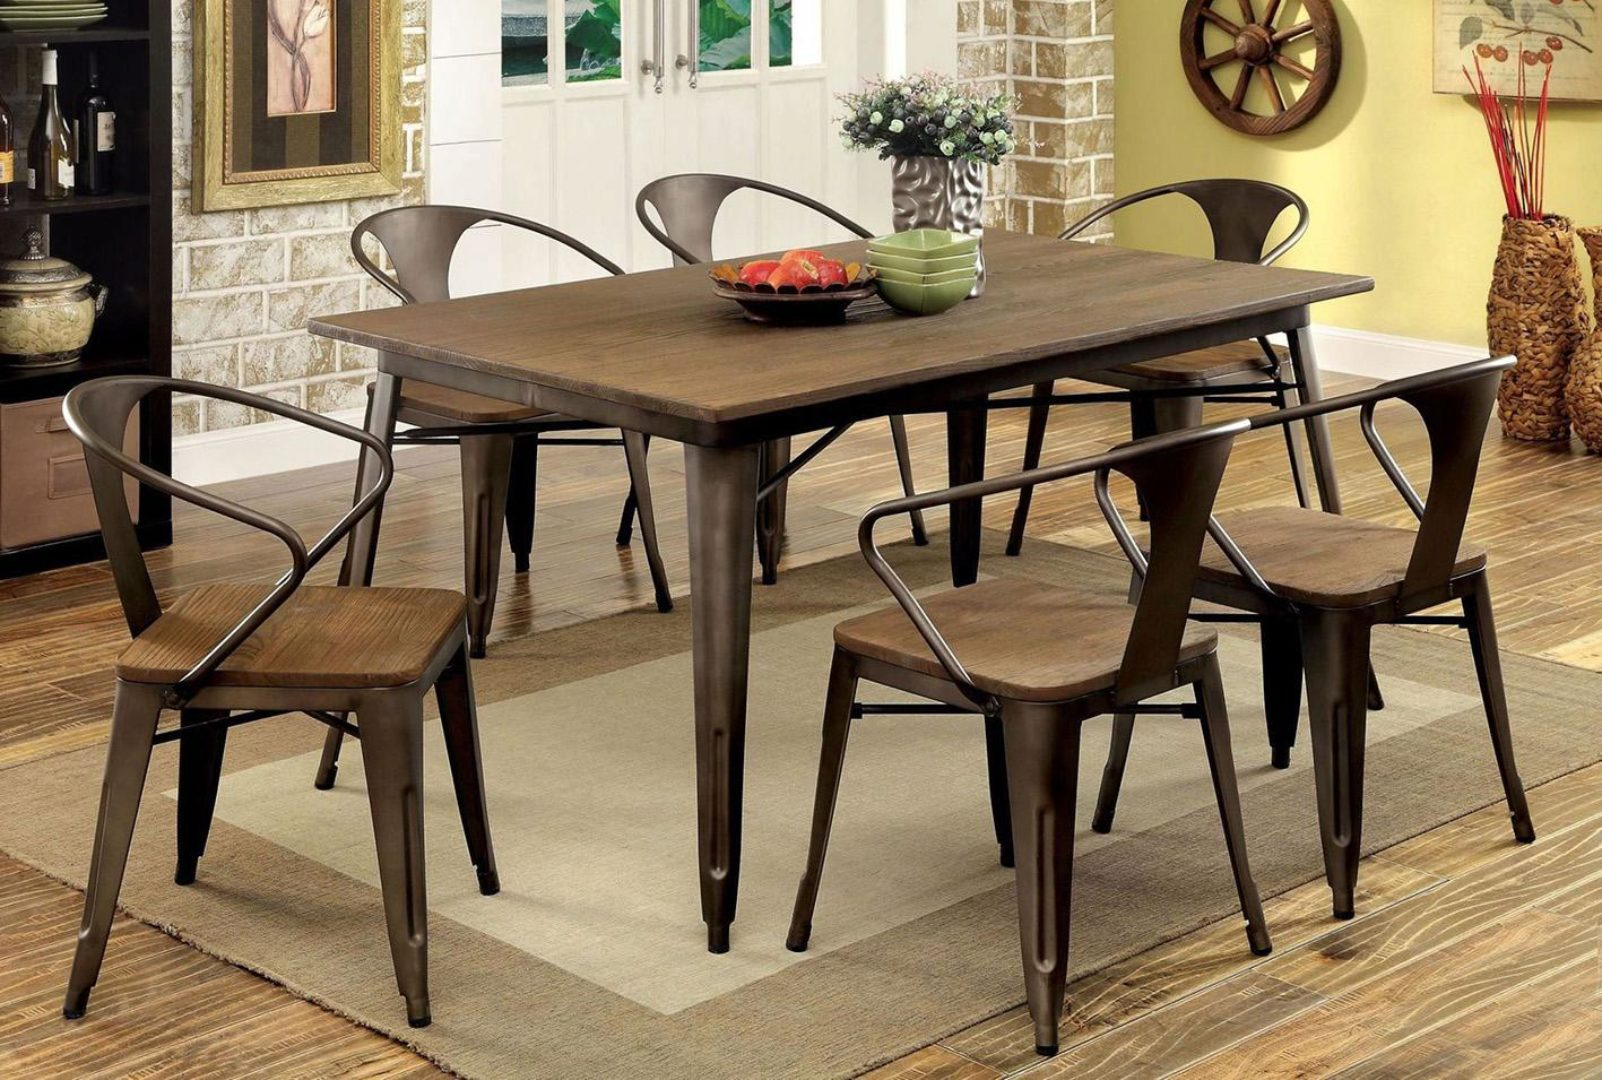 industrial style dining table set